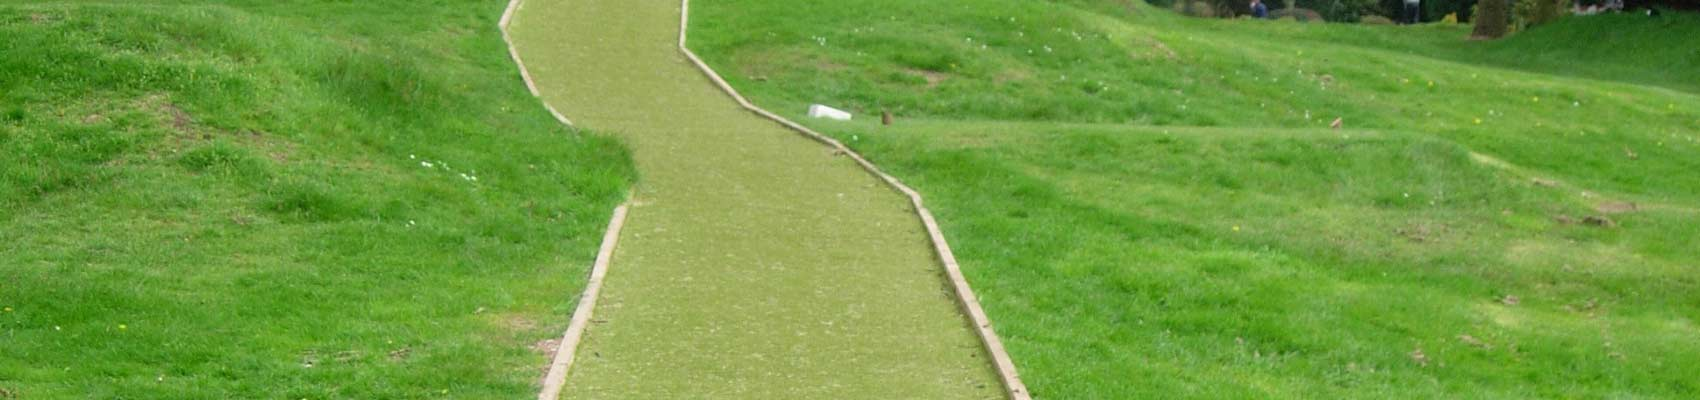 Artificial Turf Pathway for Golf Course